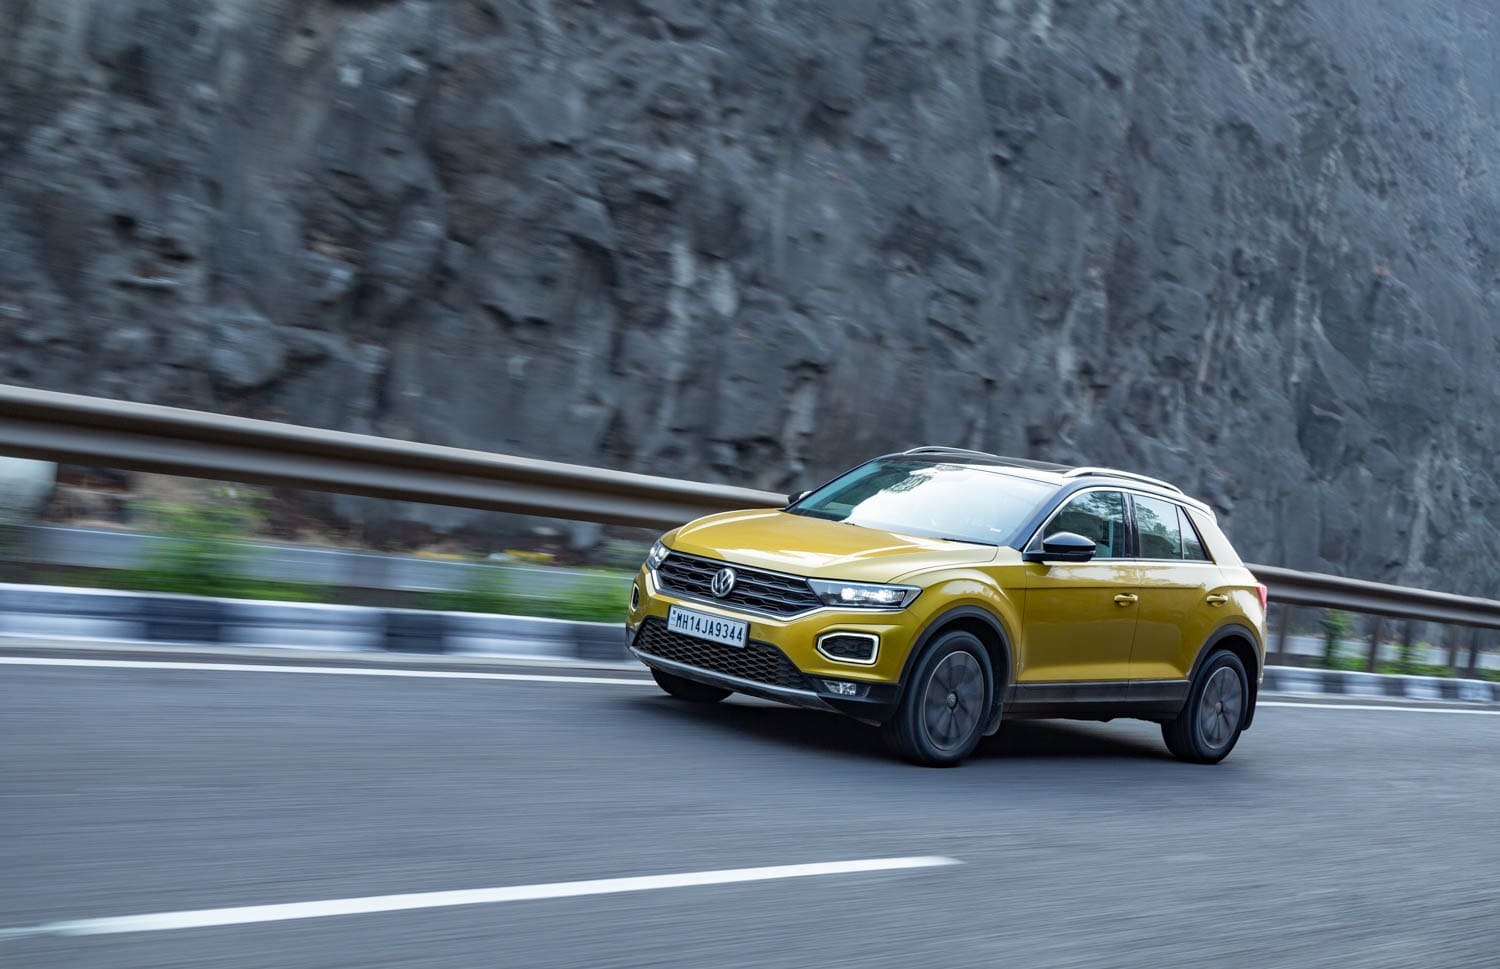 2021 Volkswagen T-Roc To Get Costlier By Rs 1.36 Lakh